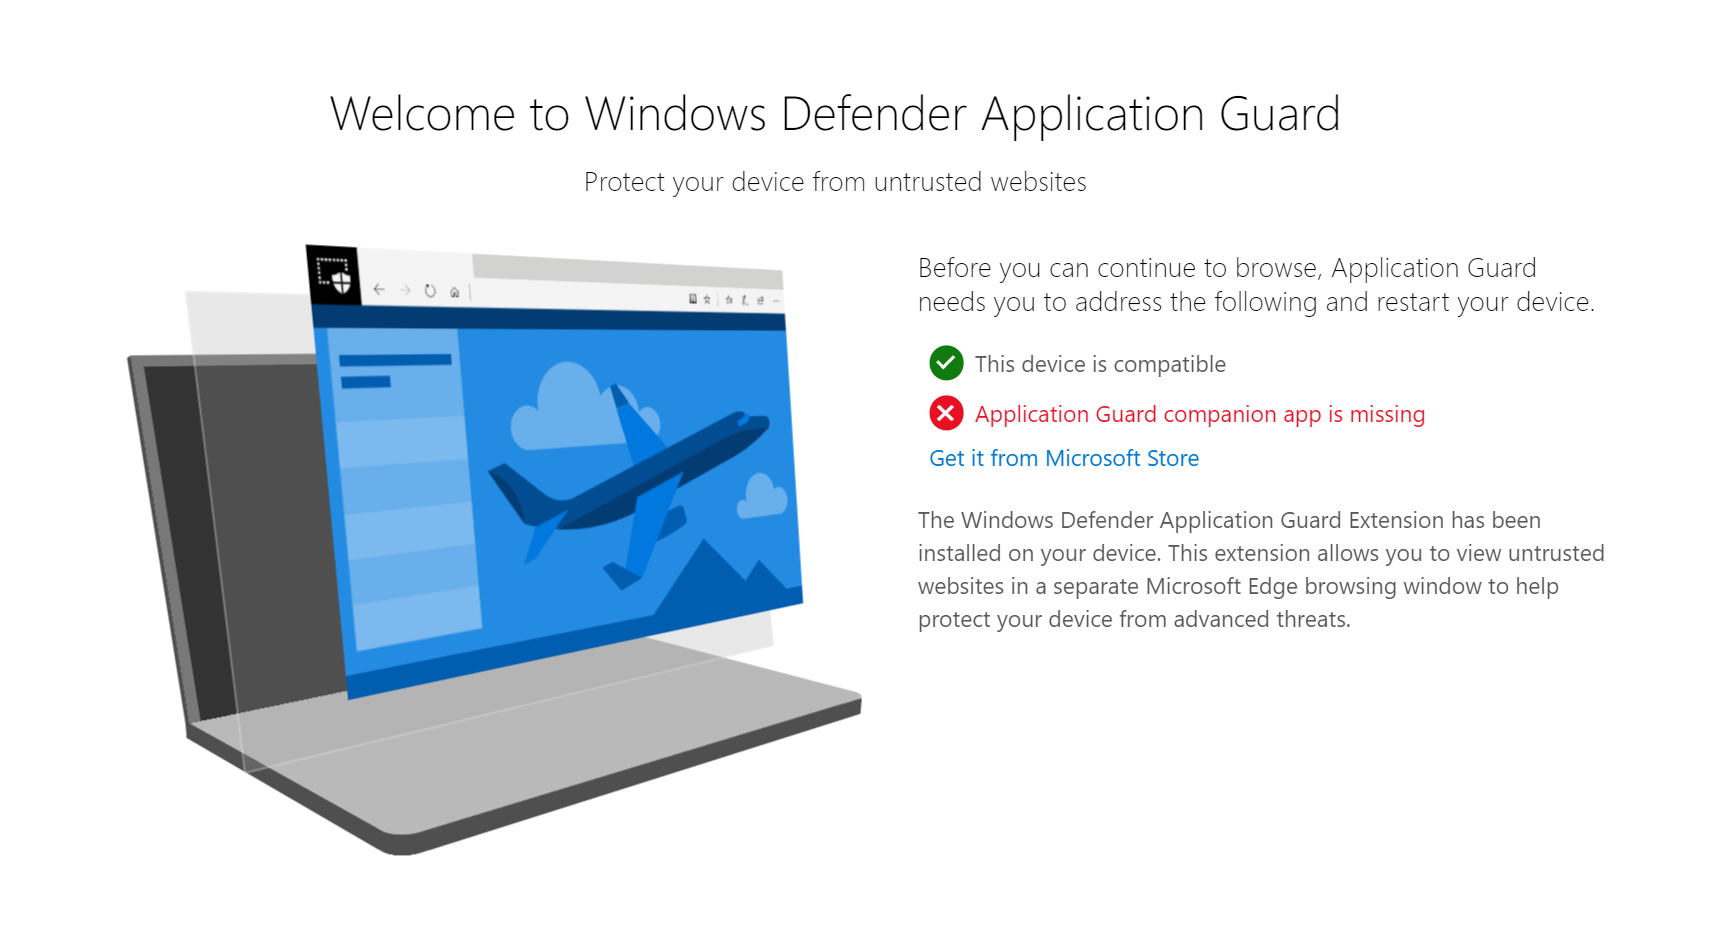 Right Click: To Open Link in New Application Guard Window windows-defender-application-guard-components-not-complete.png